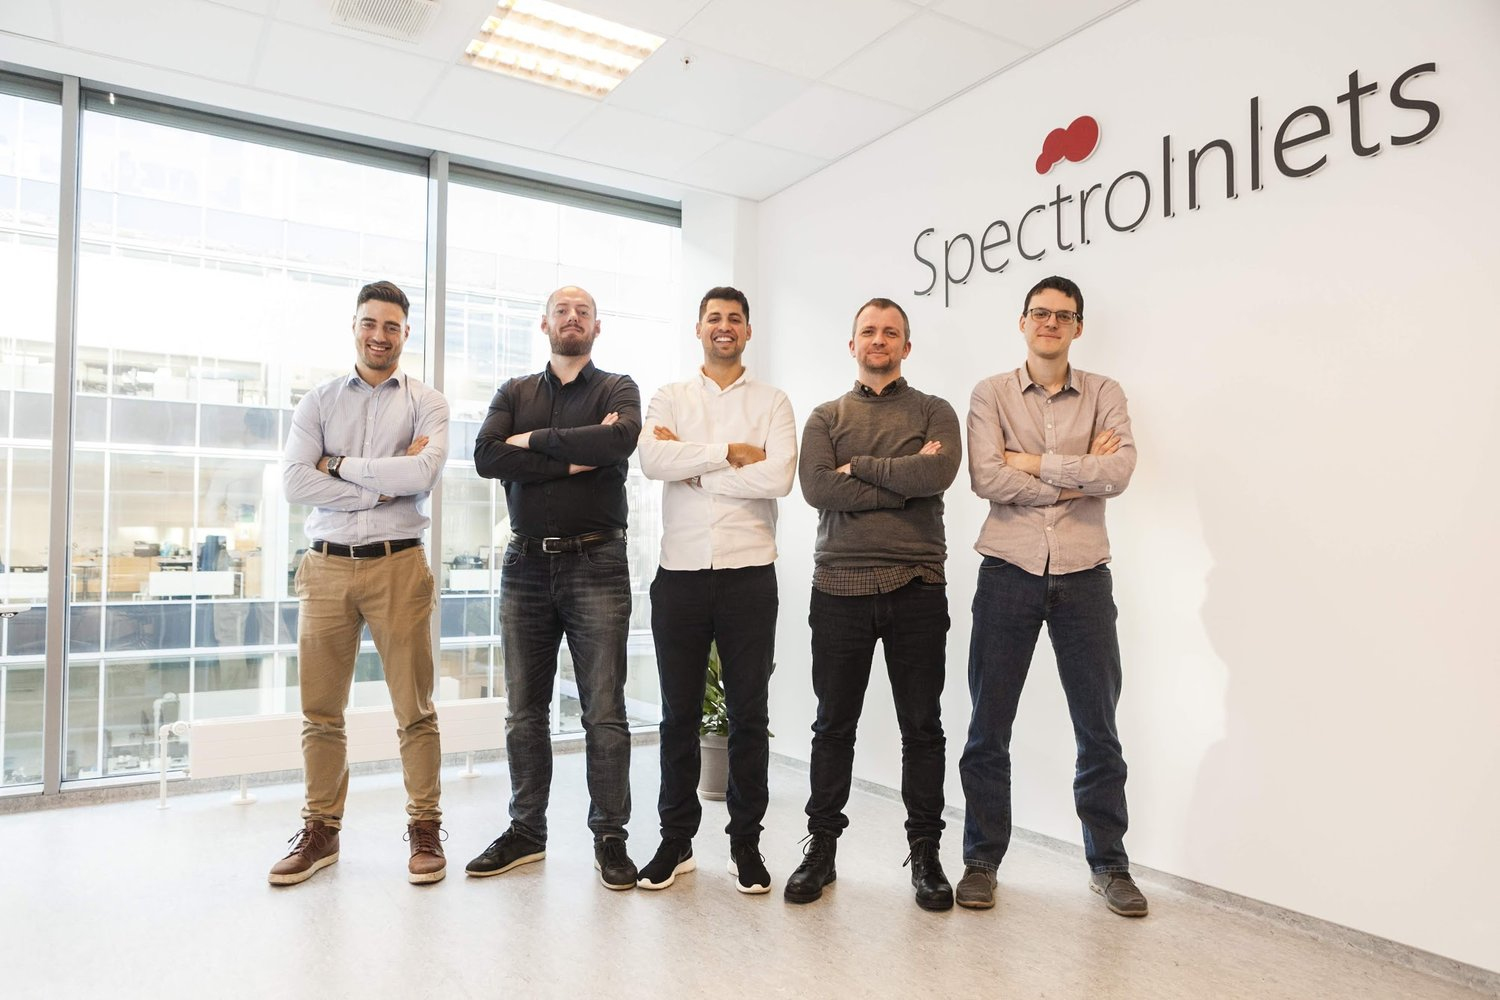 The Spectro Inlets team in the headquarters in Copenhagen. From left to right: Filippo Cavalca, Daniel Trimarco, Anil Thilsted, Kenneth Nielsen, Bela Sebok.